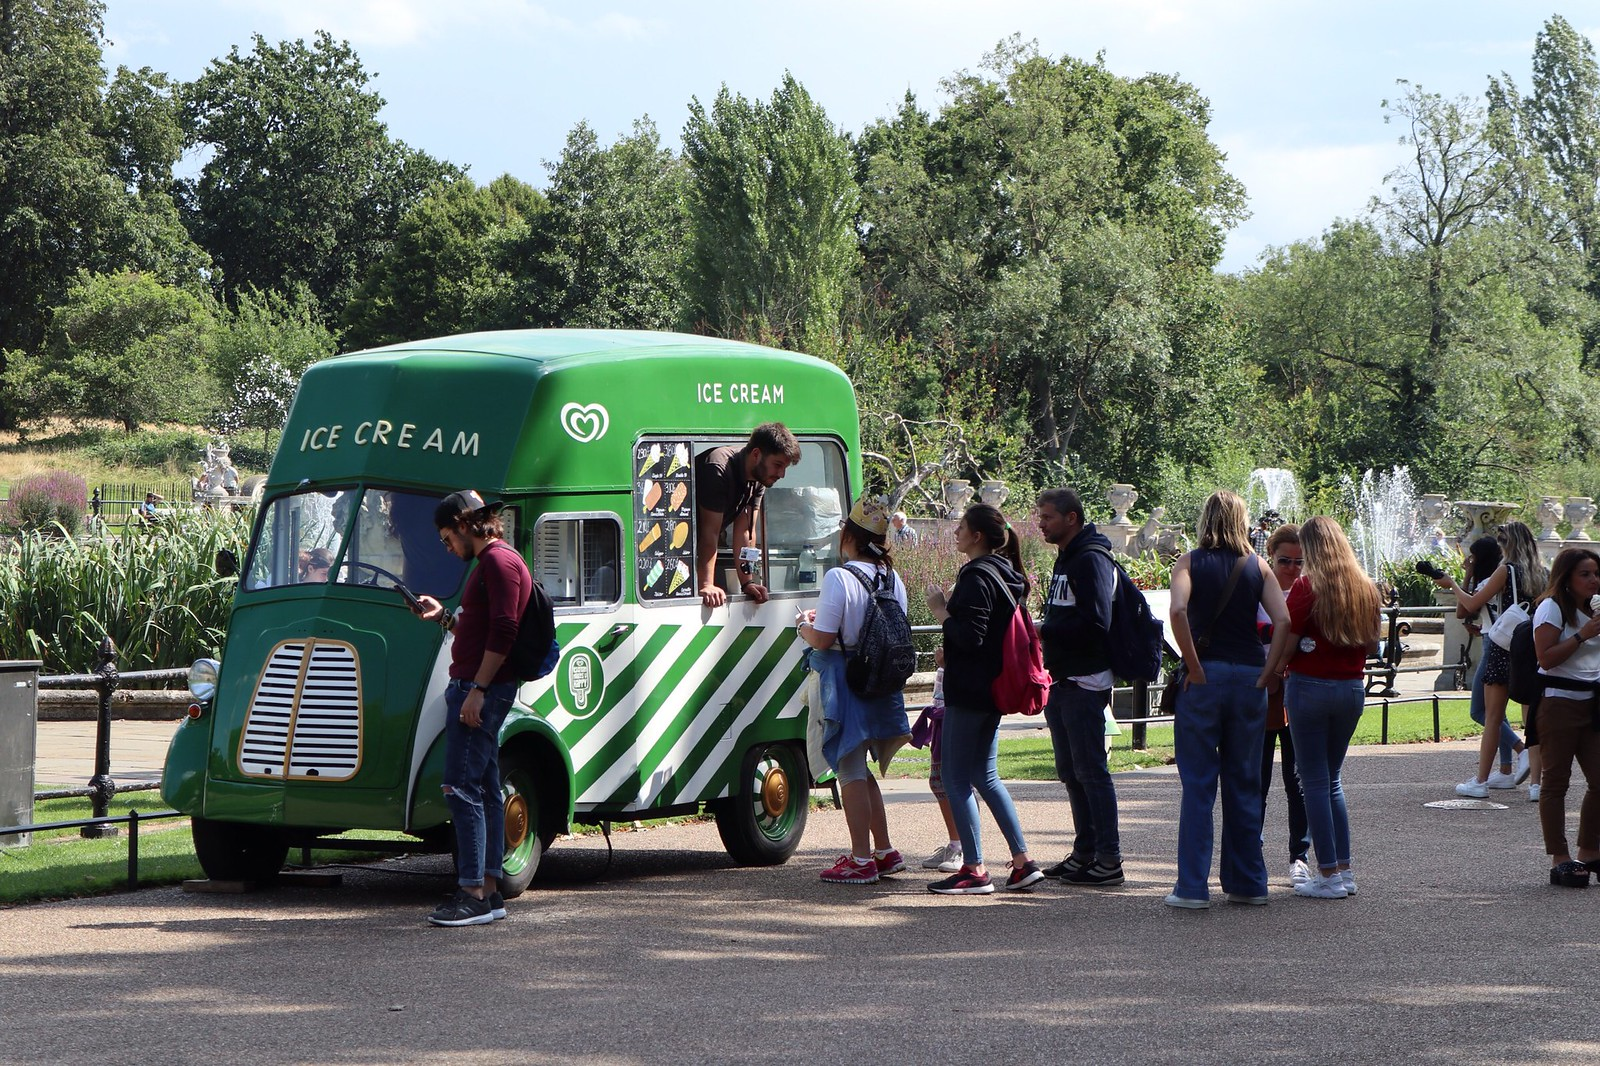 Ice truck at Kensington Gardens